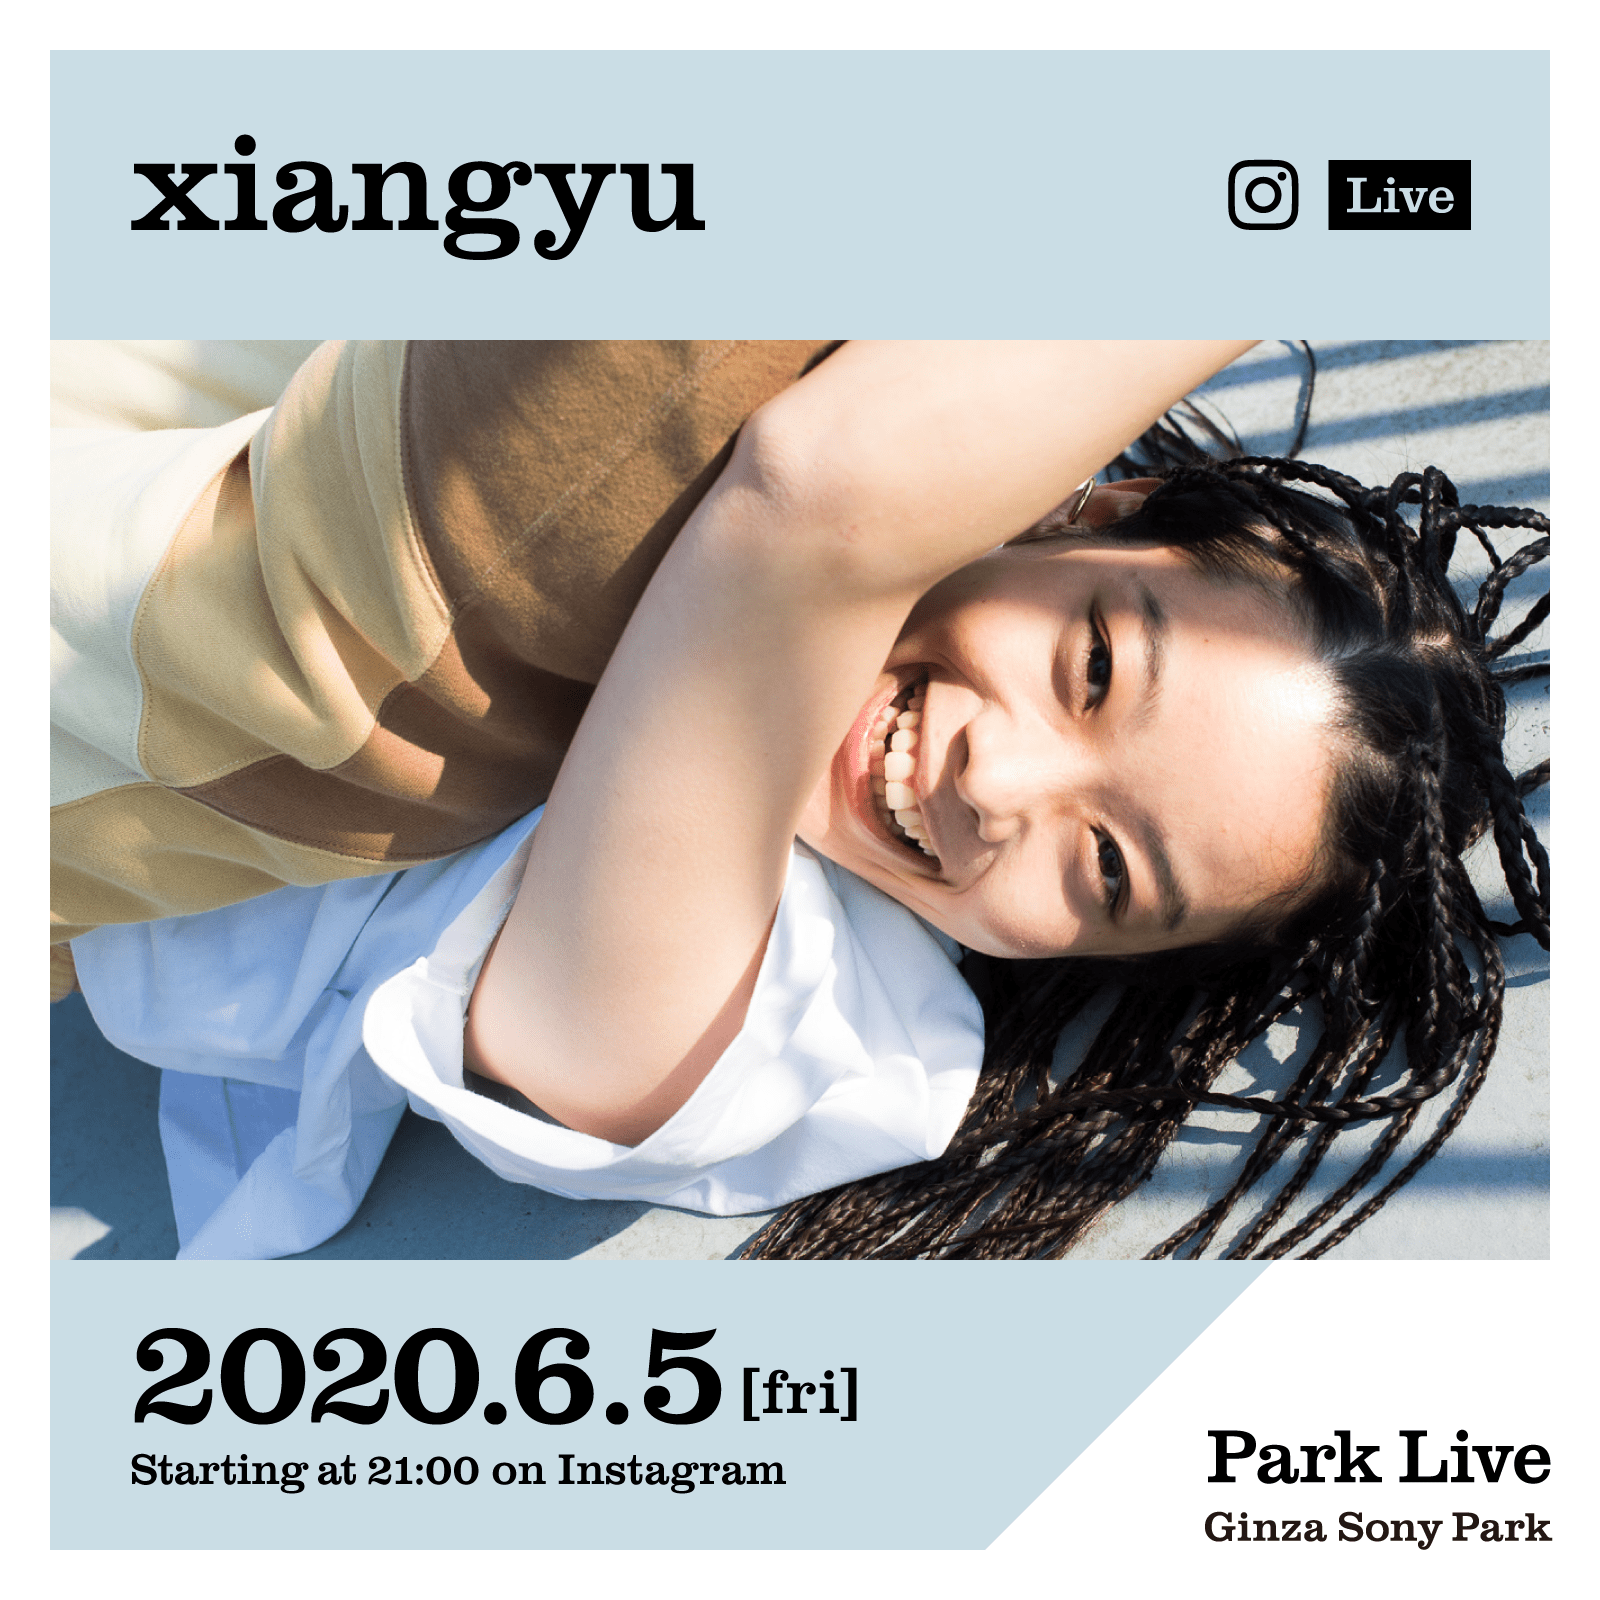 Ginza Sony Park xiangyu Tokyo Weekender Online Streaming Music